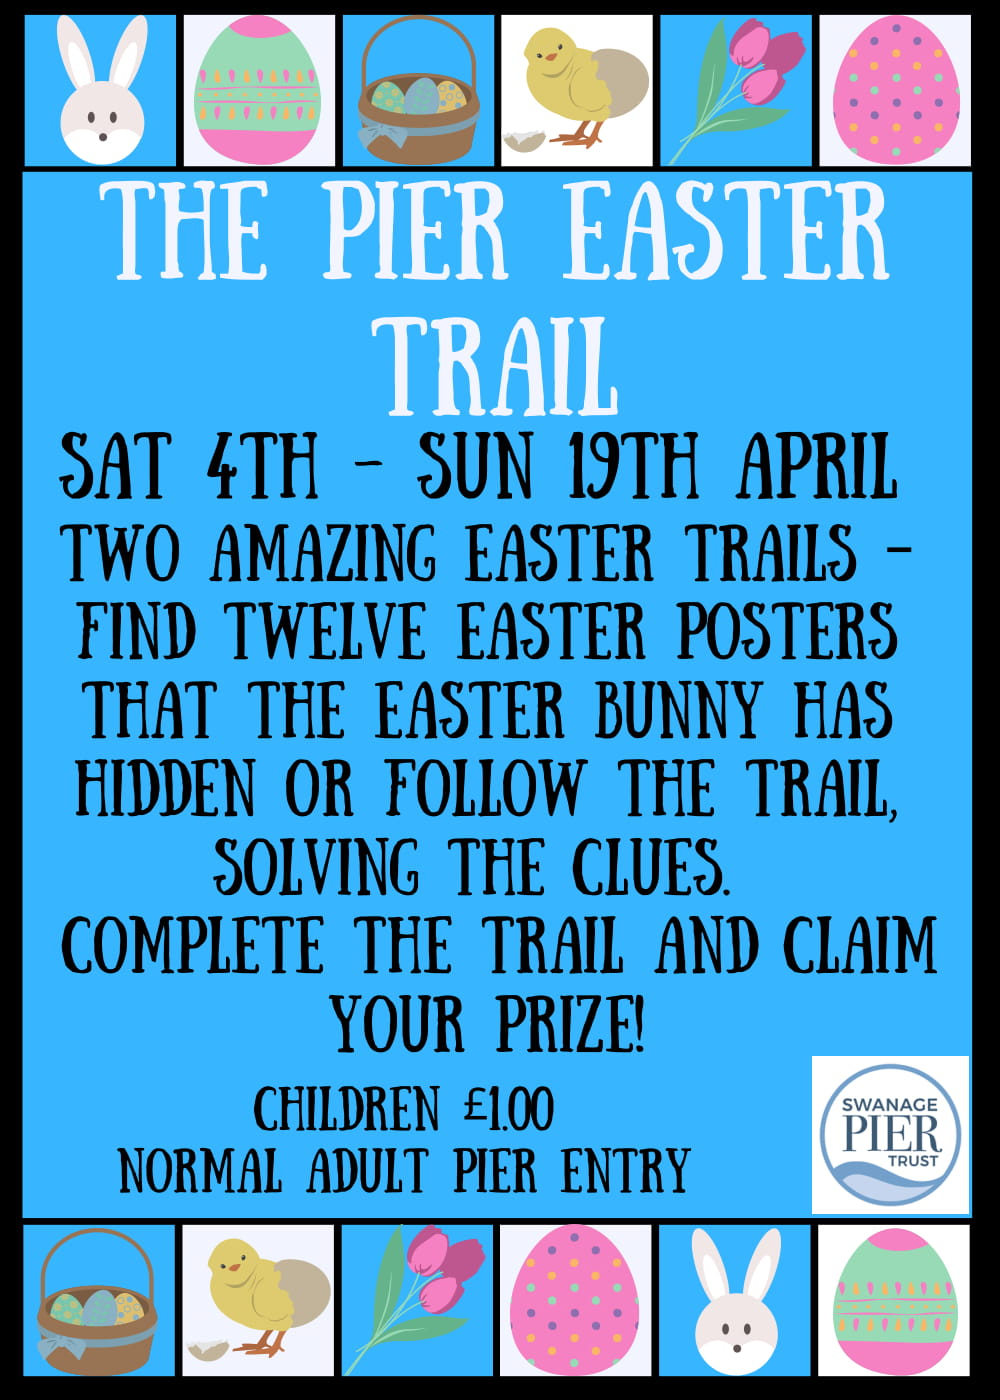 Swanage Pier Easter Trail